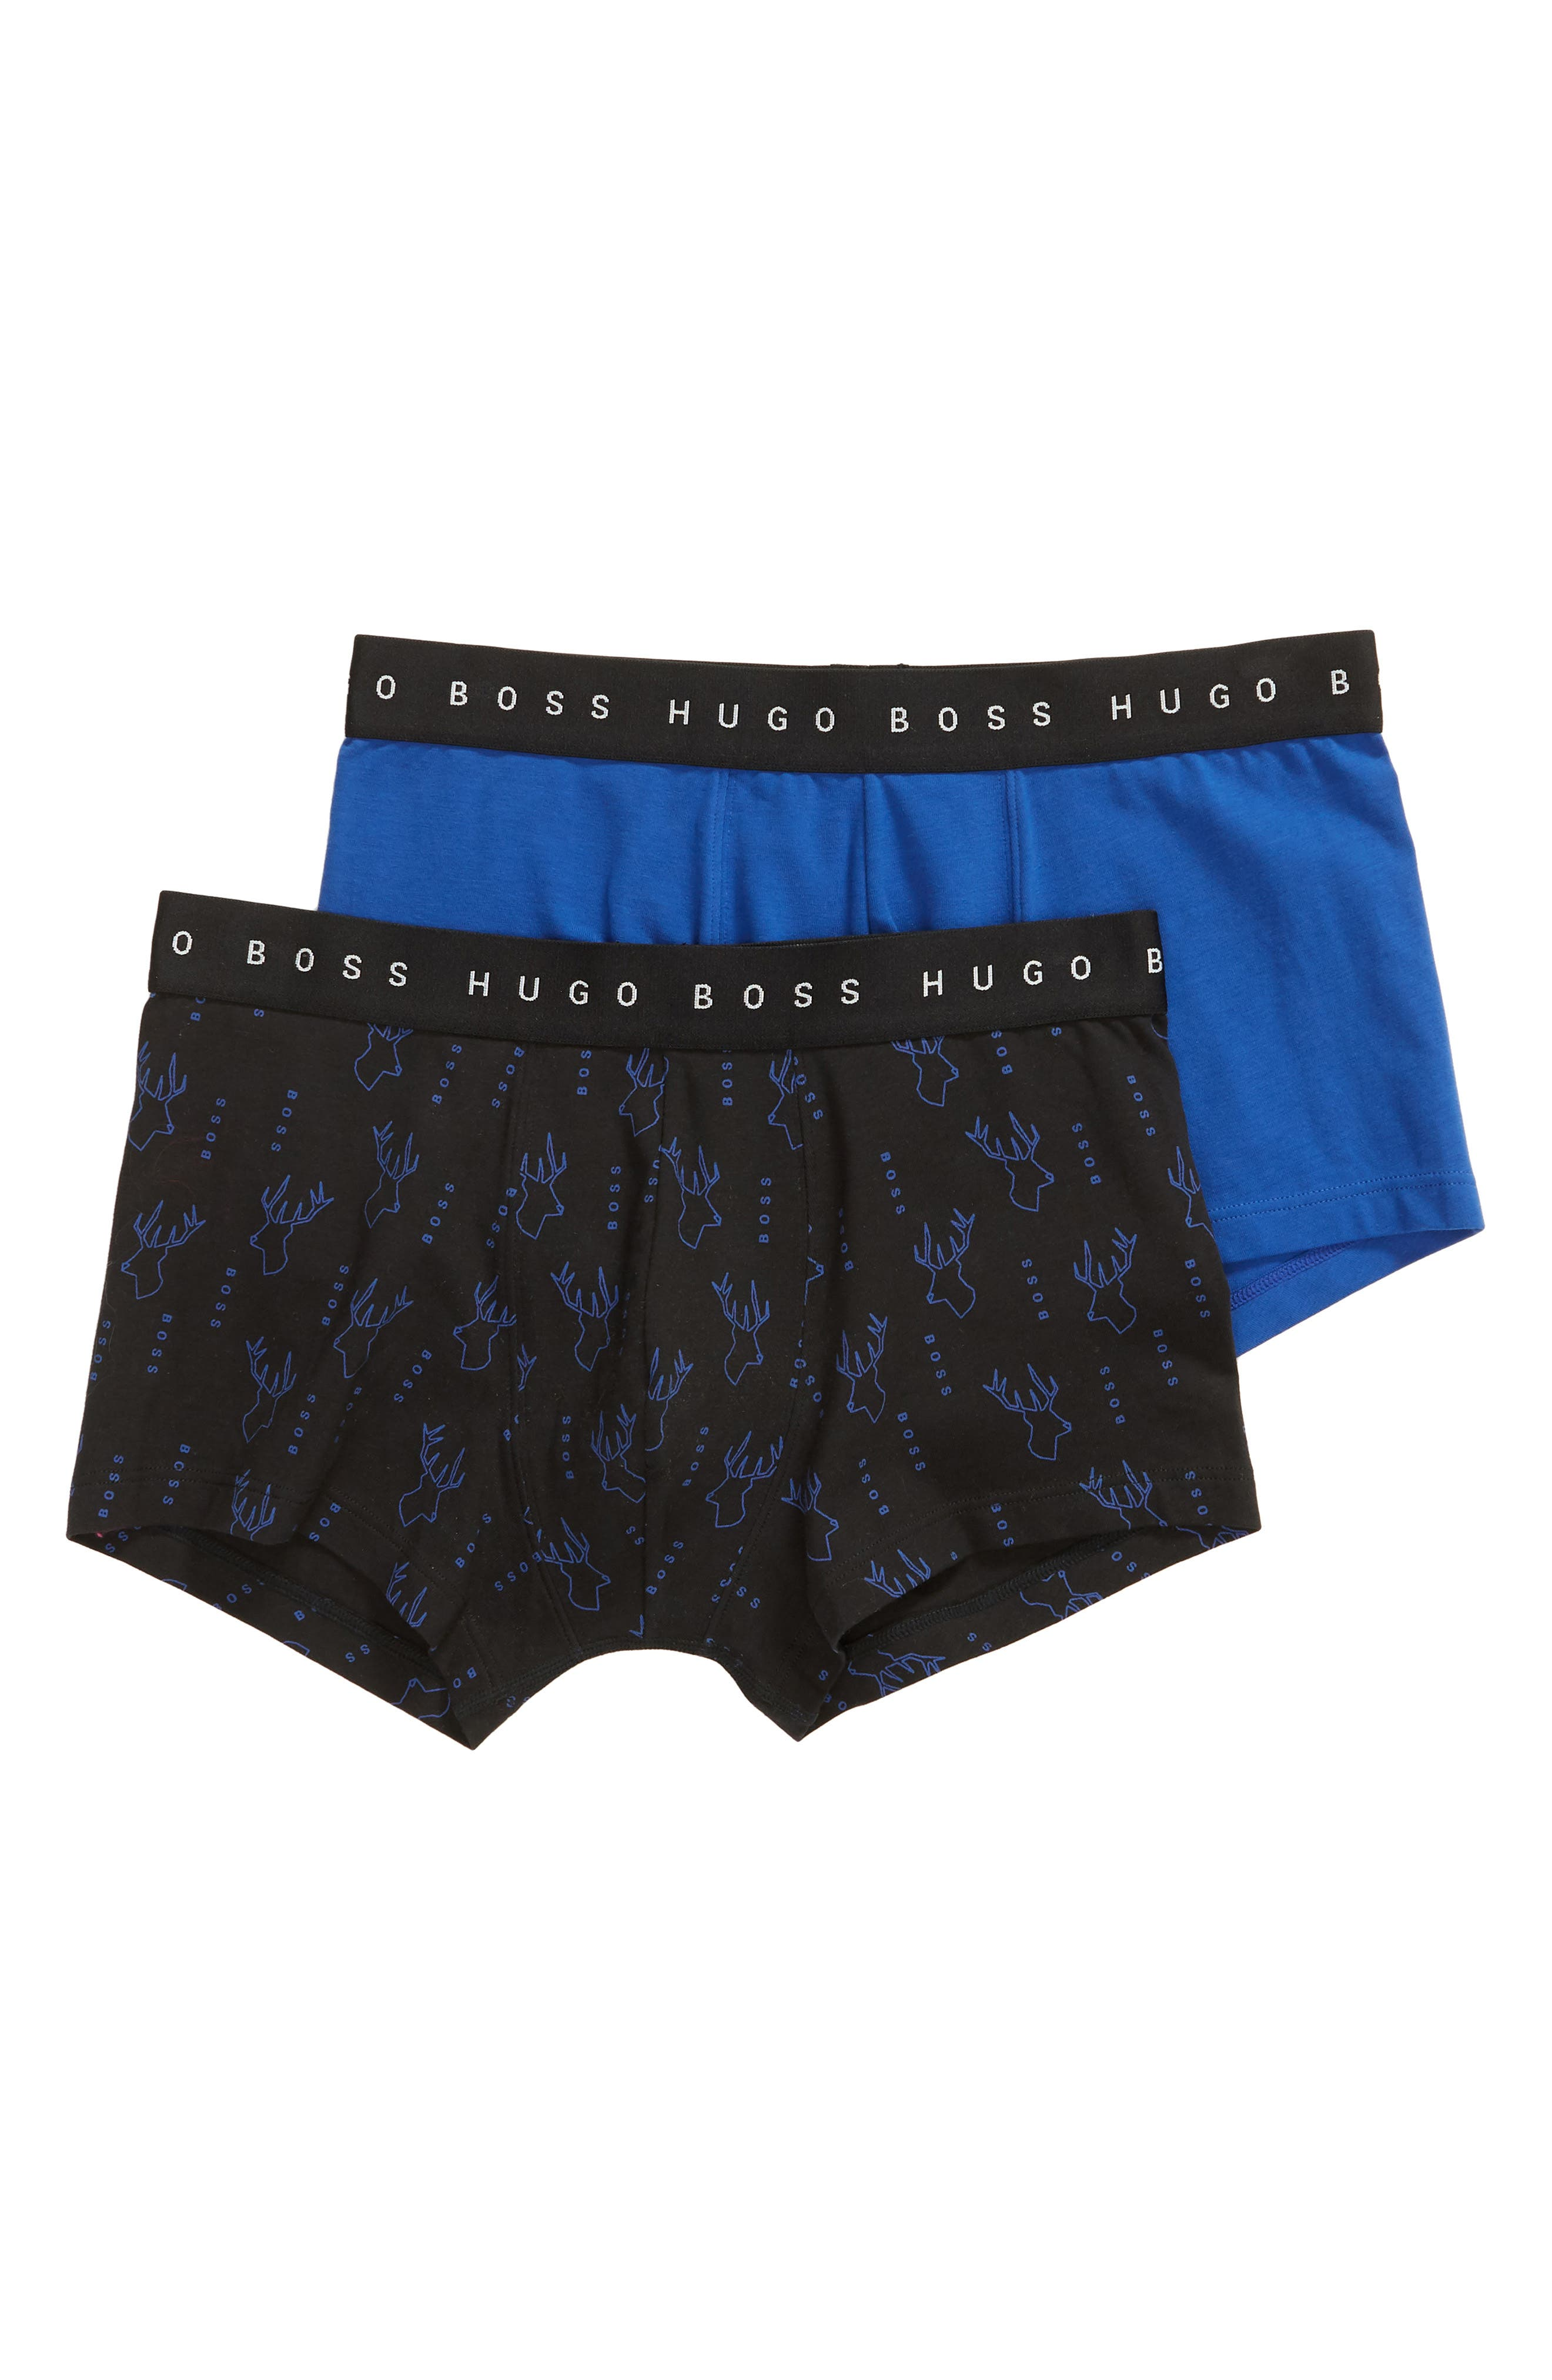 BOSS 2-Pack Cotton Trunks, Main, color, 424